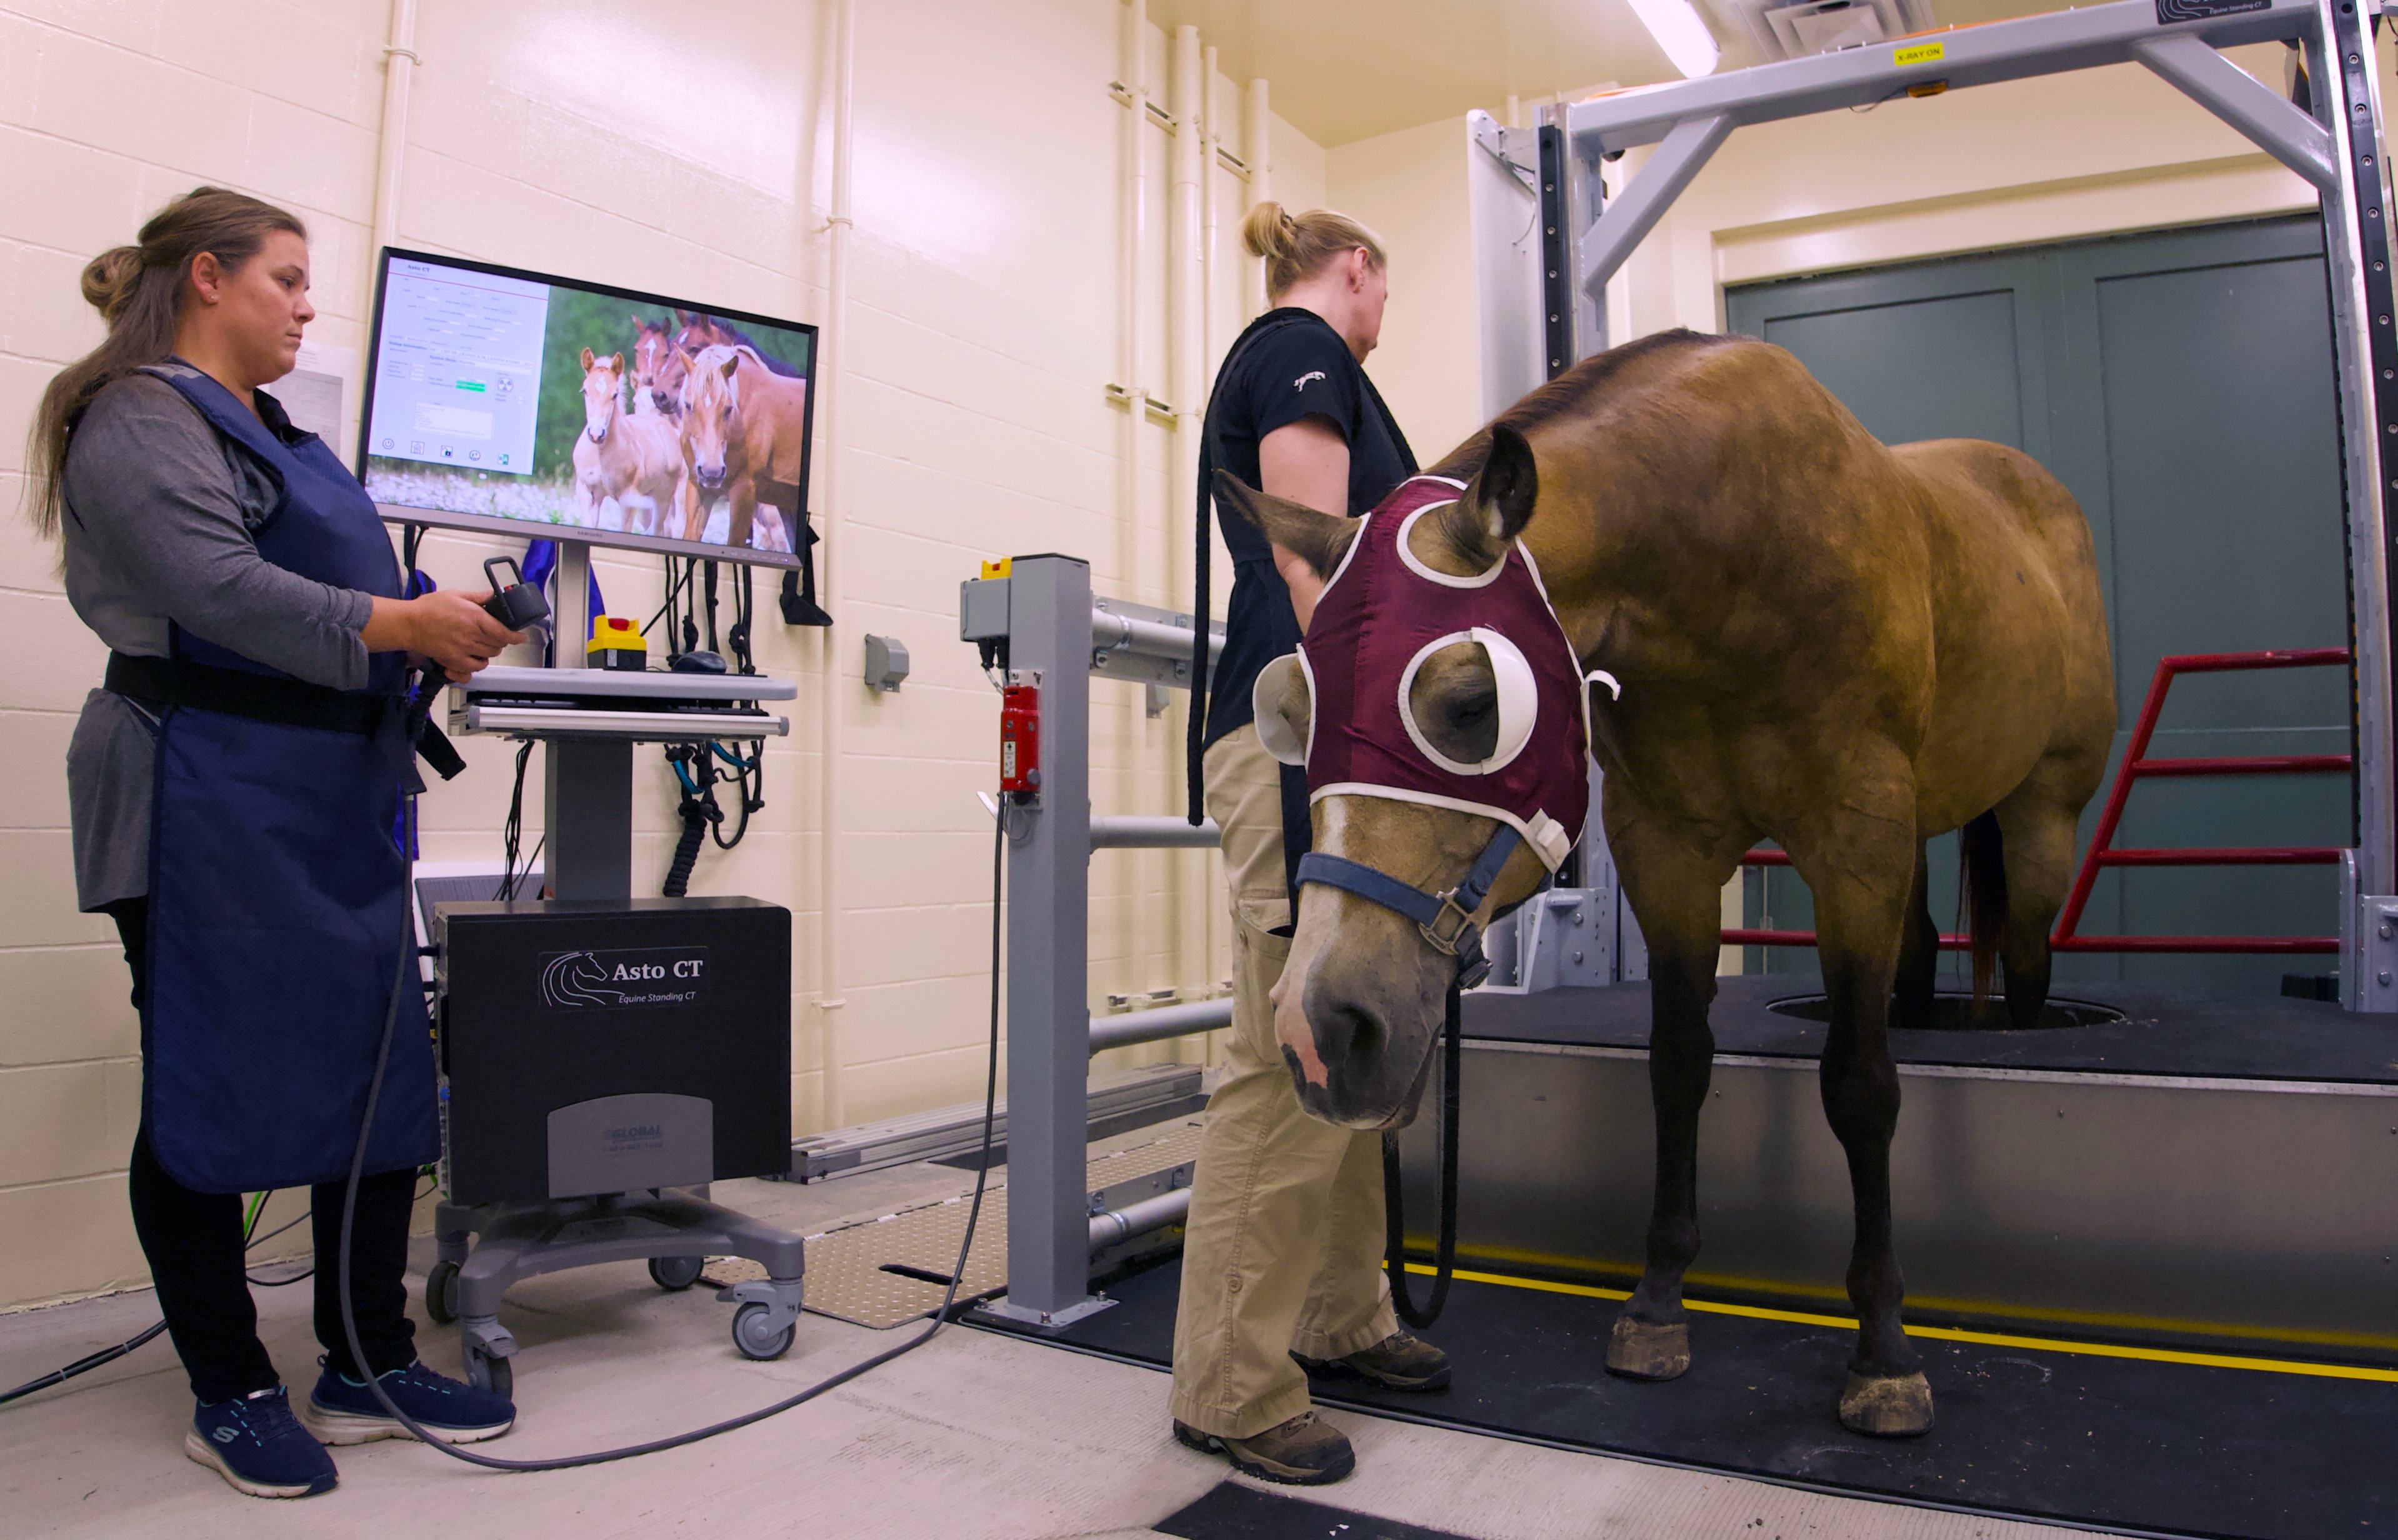 A brown horse has its rear legs scanned by the new standing CT at Leatherdale Equine Center. Two staff members help capture the image.